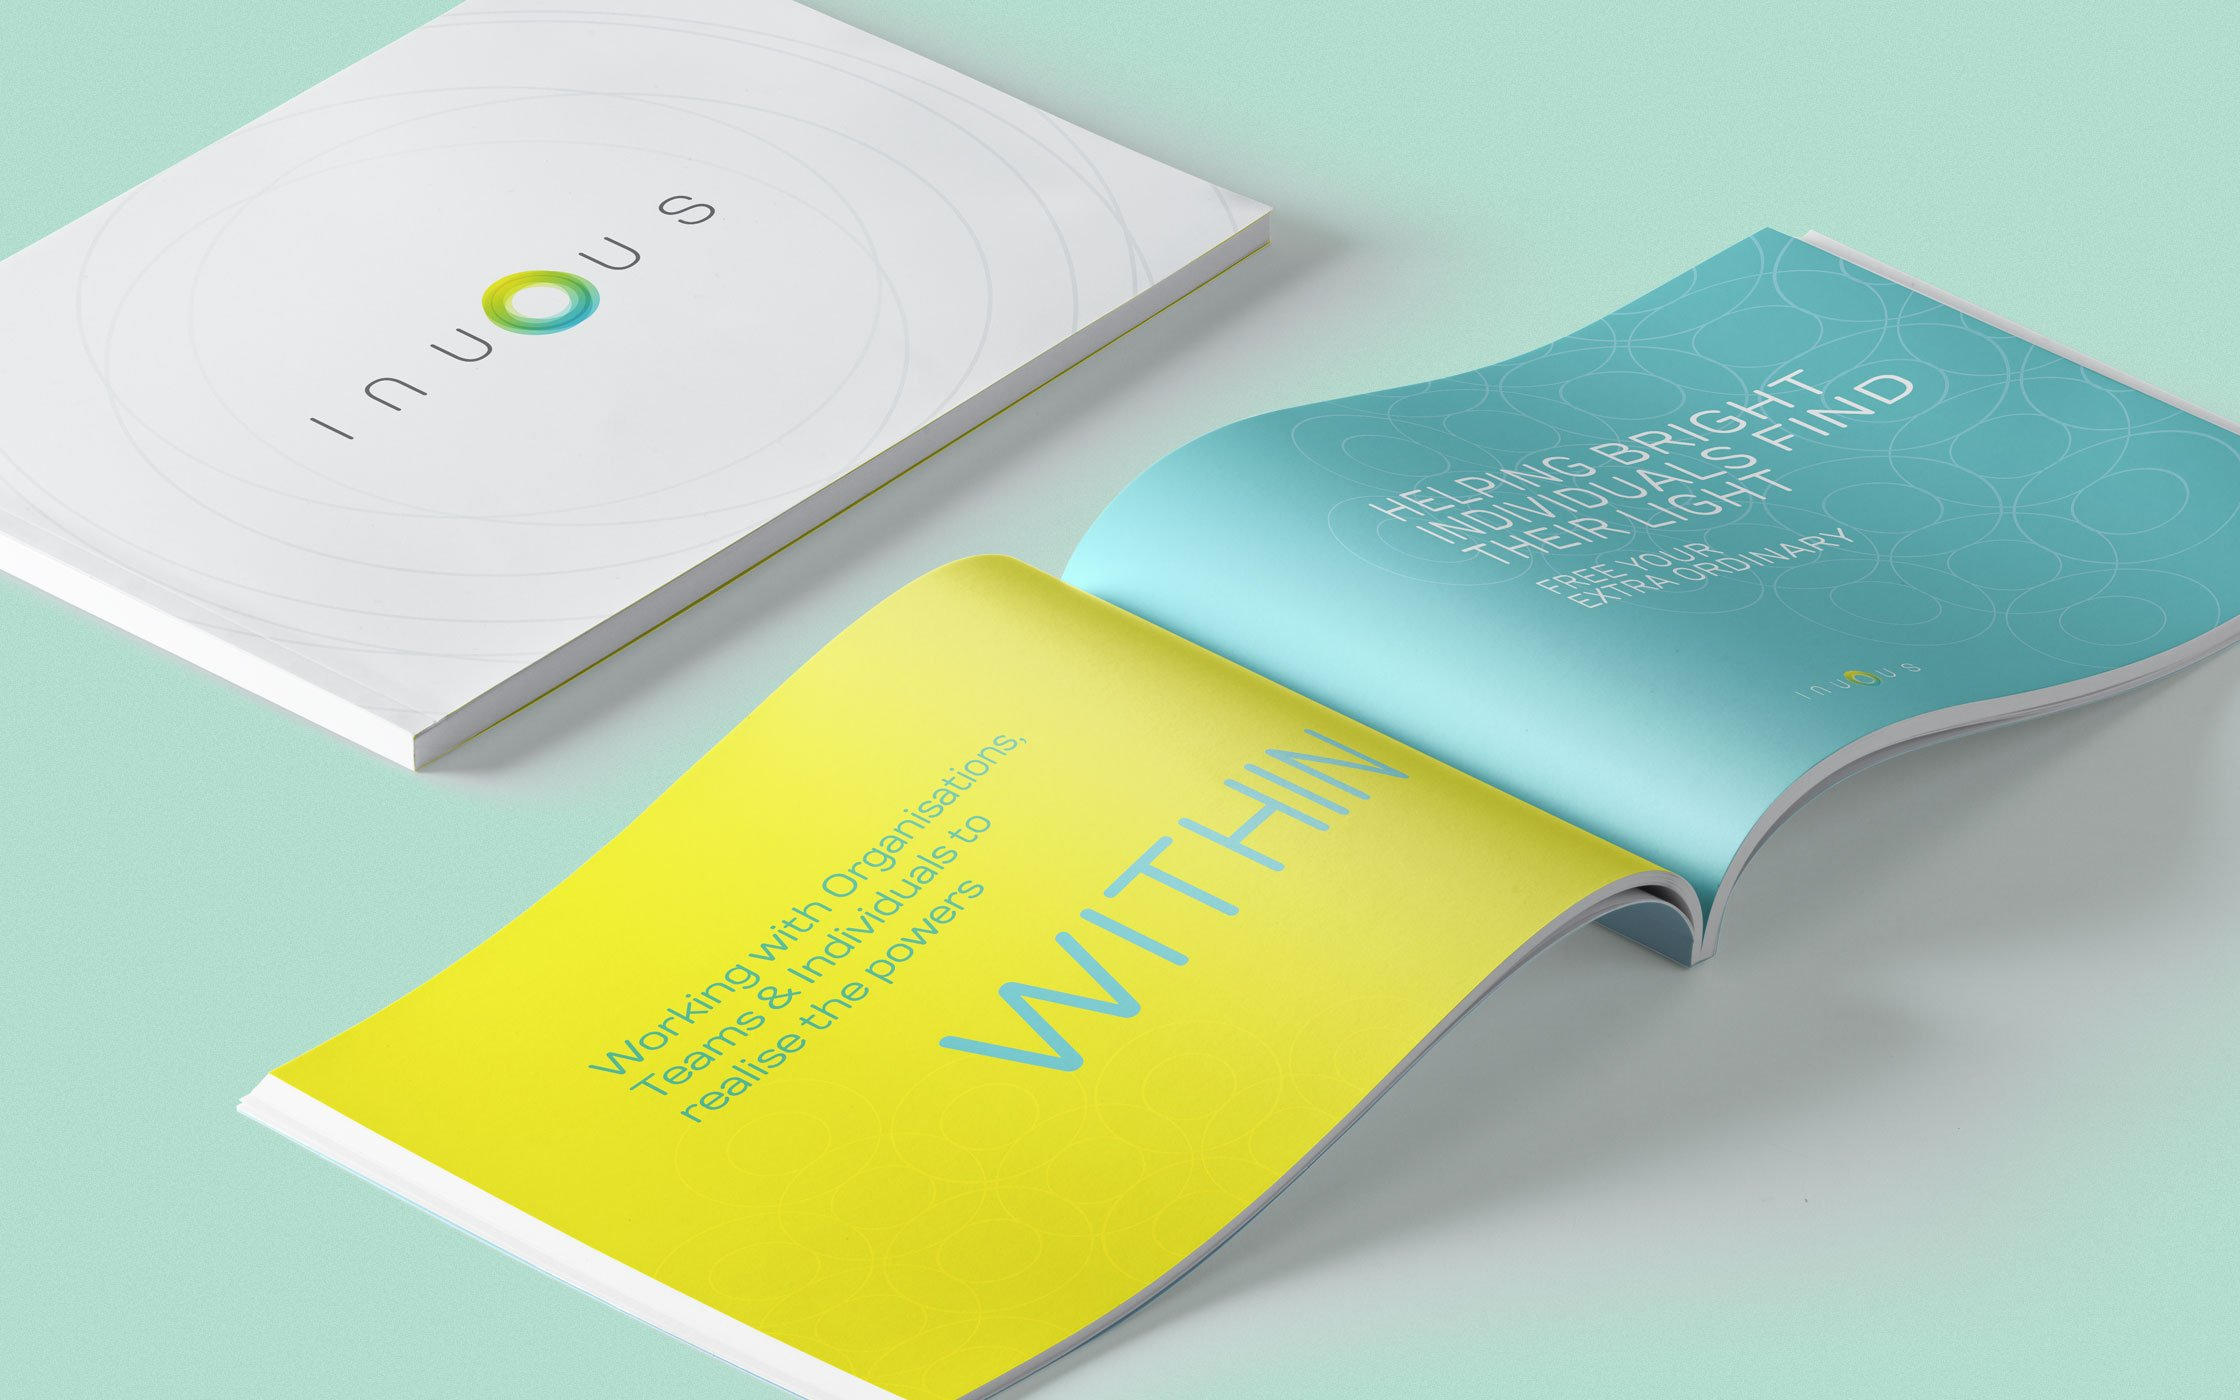 Printed brochure designed for Inuous